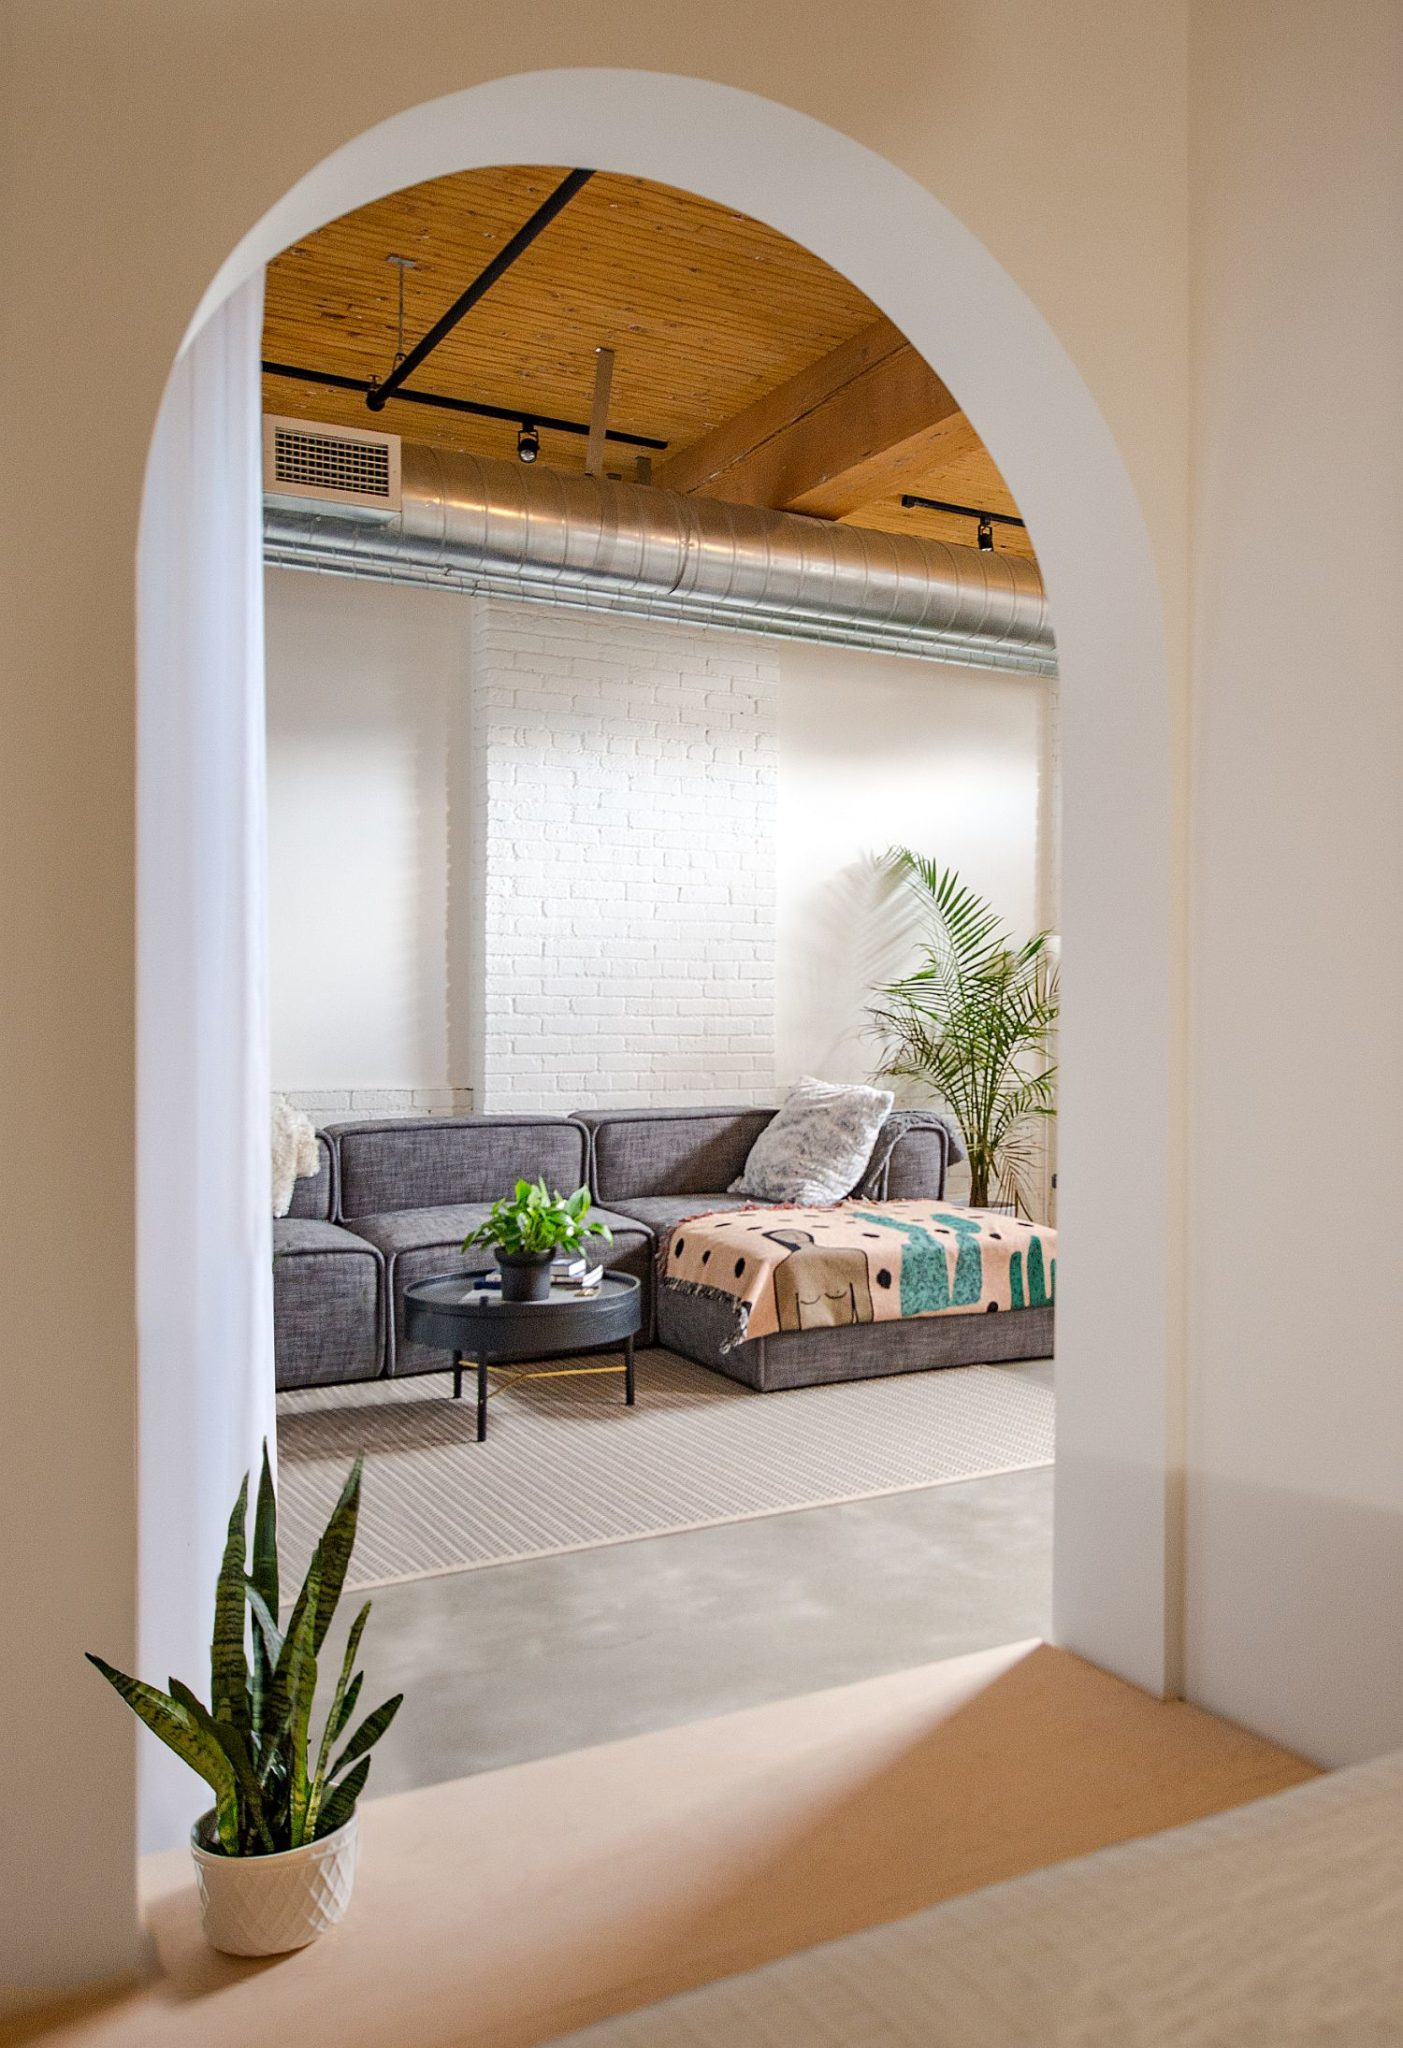 Arched-doorways-and-entryways-give-the-loft-a-unique-look